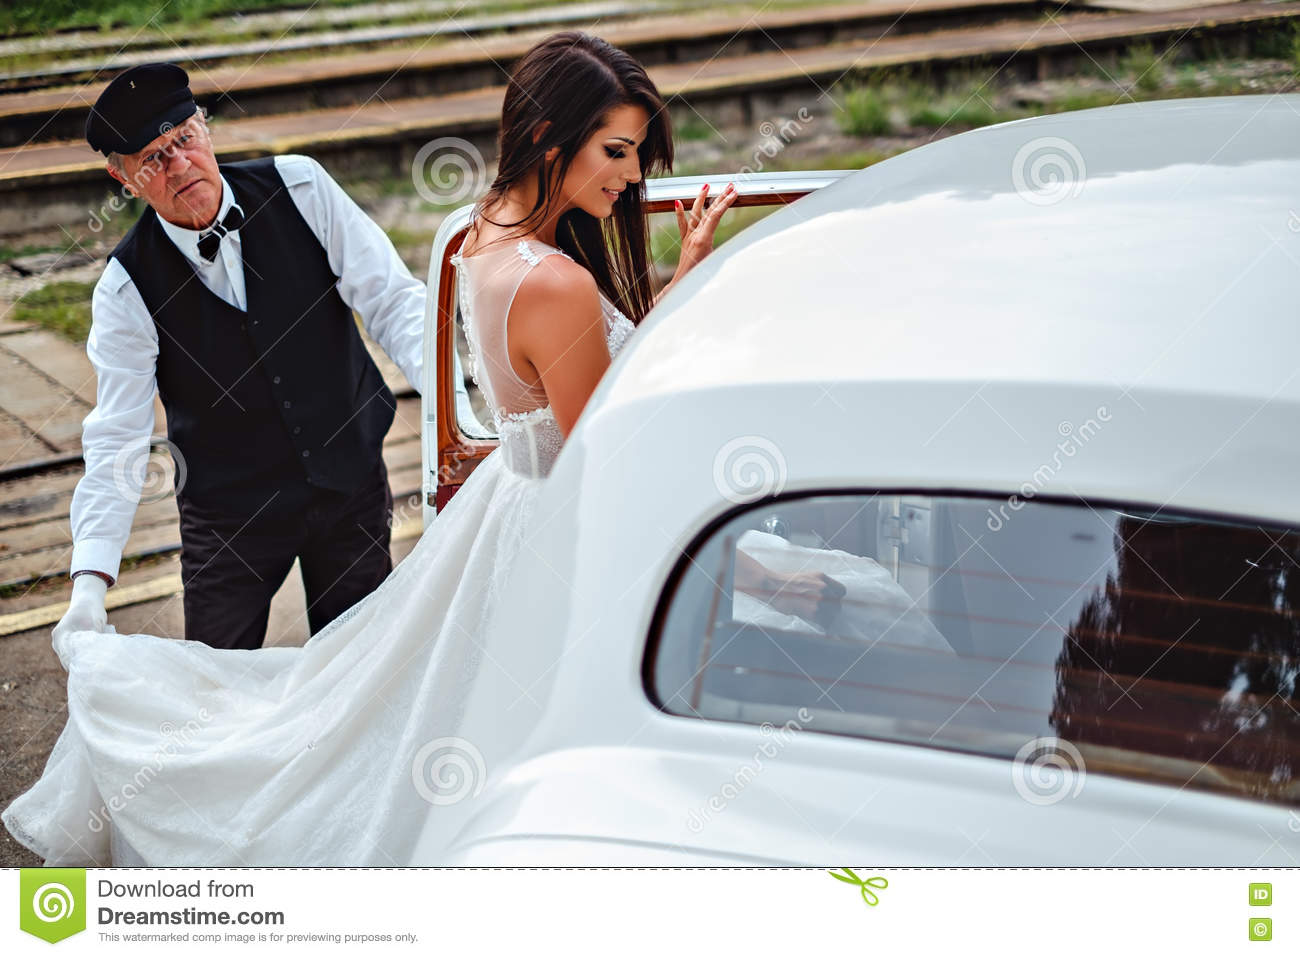 Bride entering classic car and driver holding dress